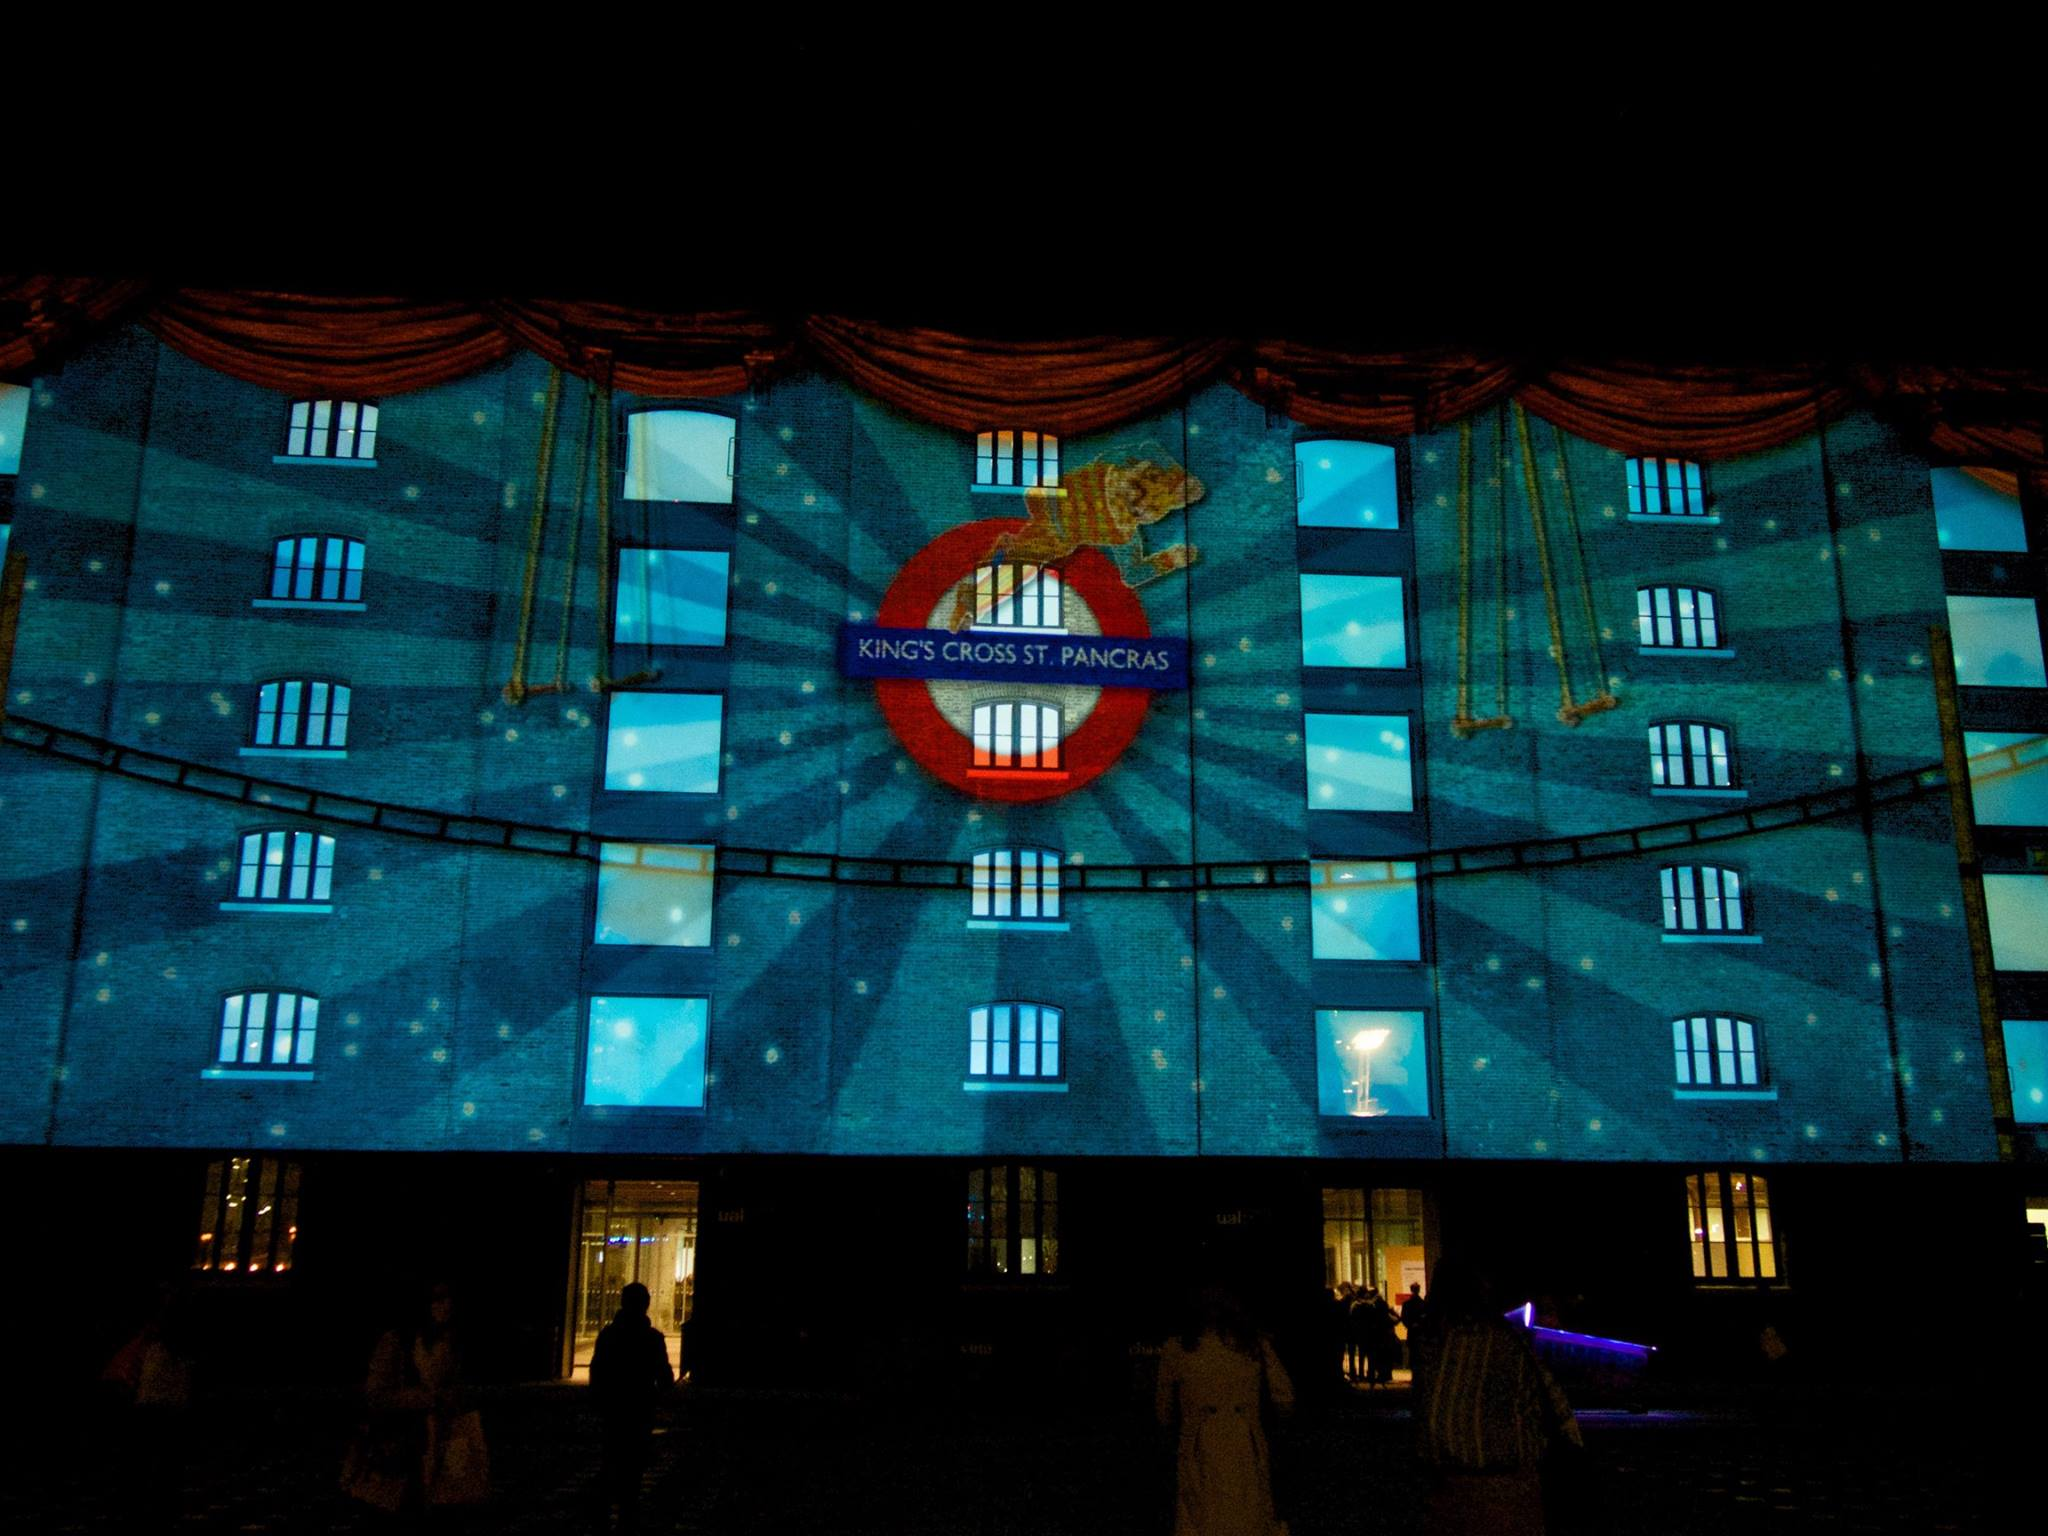 Playing on the wall of a building at Kings Cross station was the circus of light. An interactive circus show